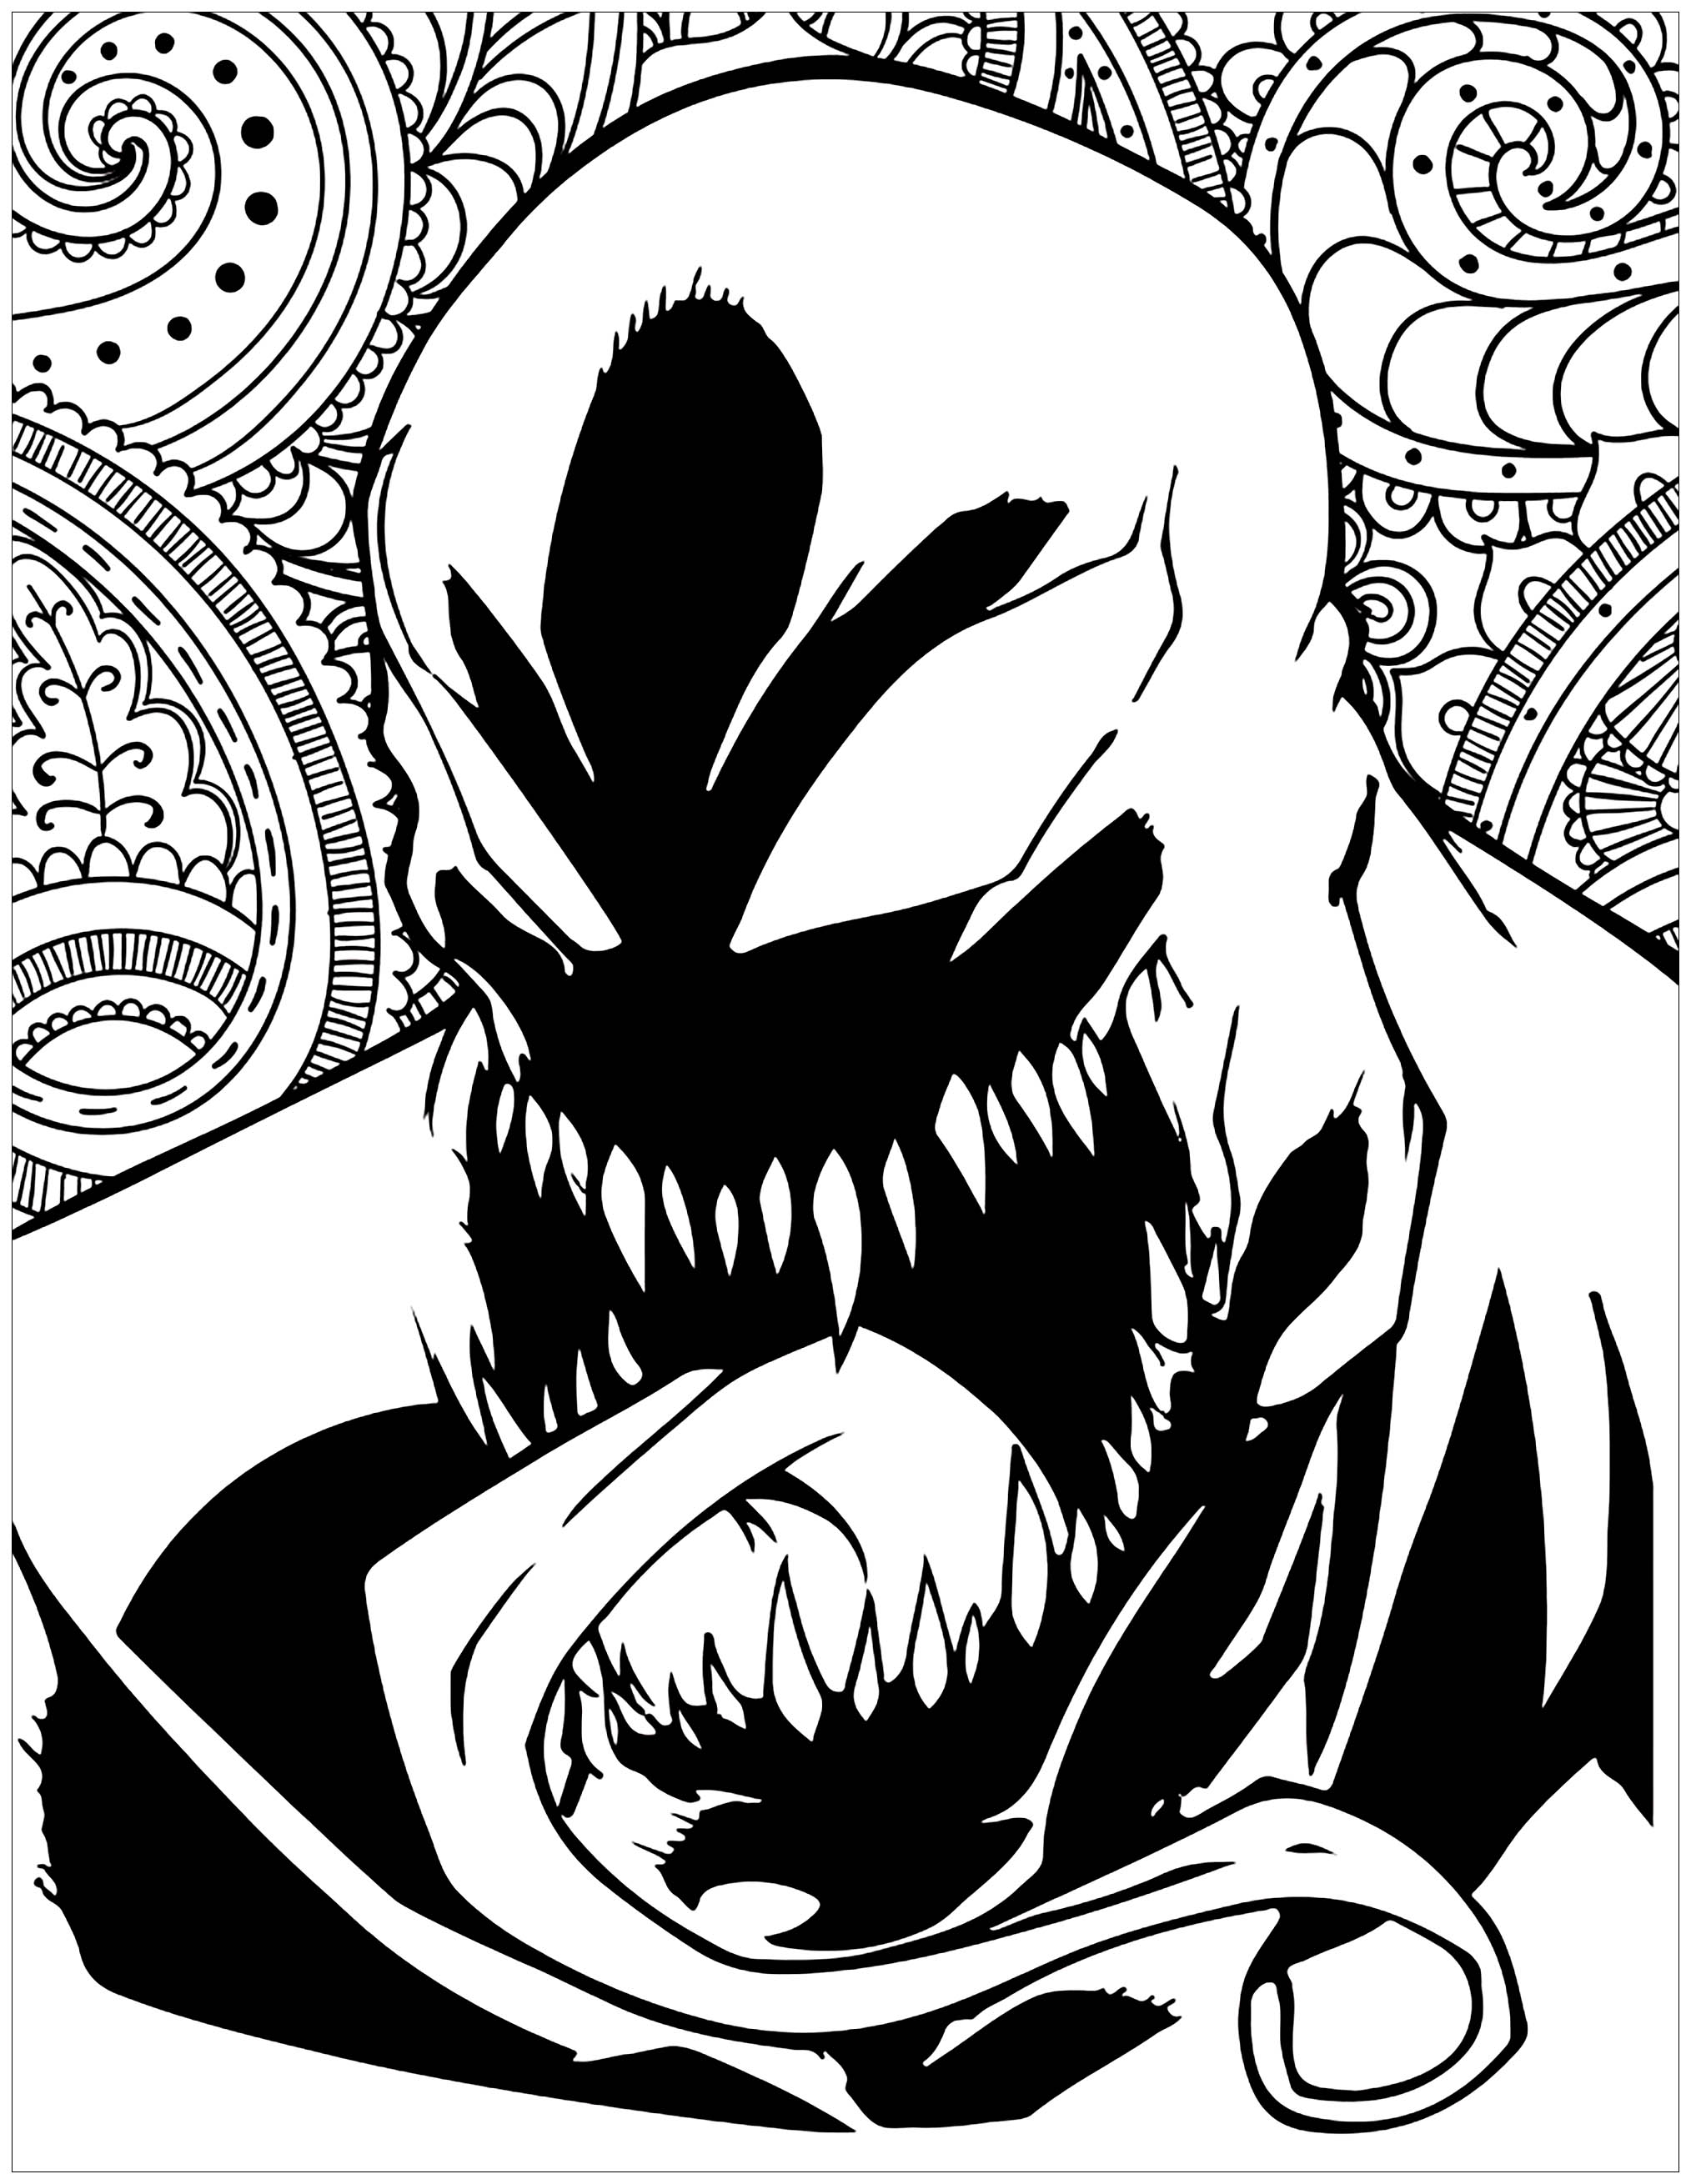 Marvel Villains : Venom